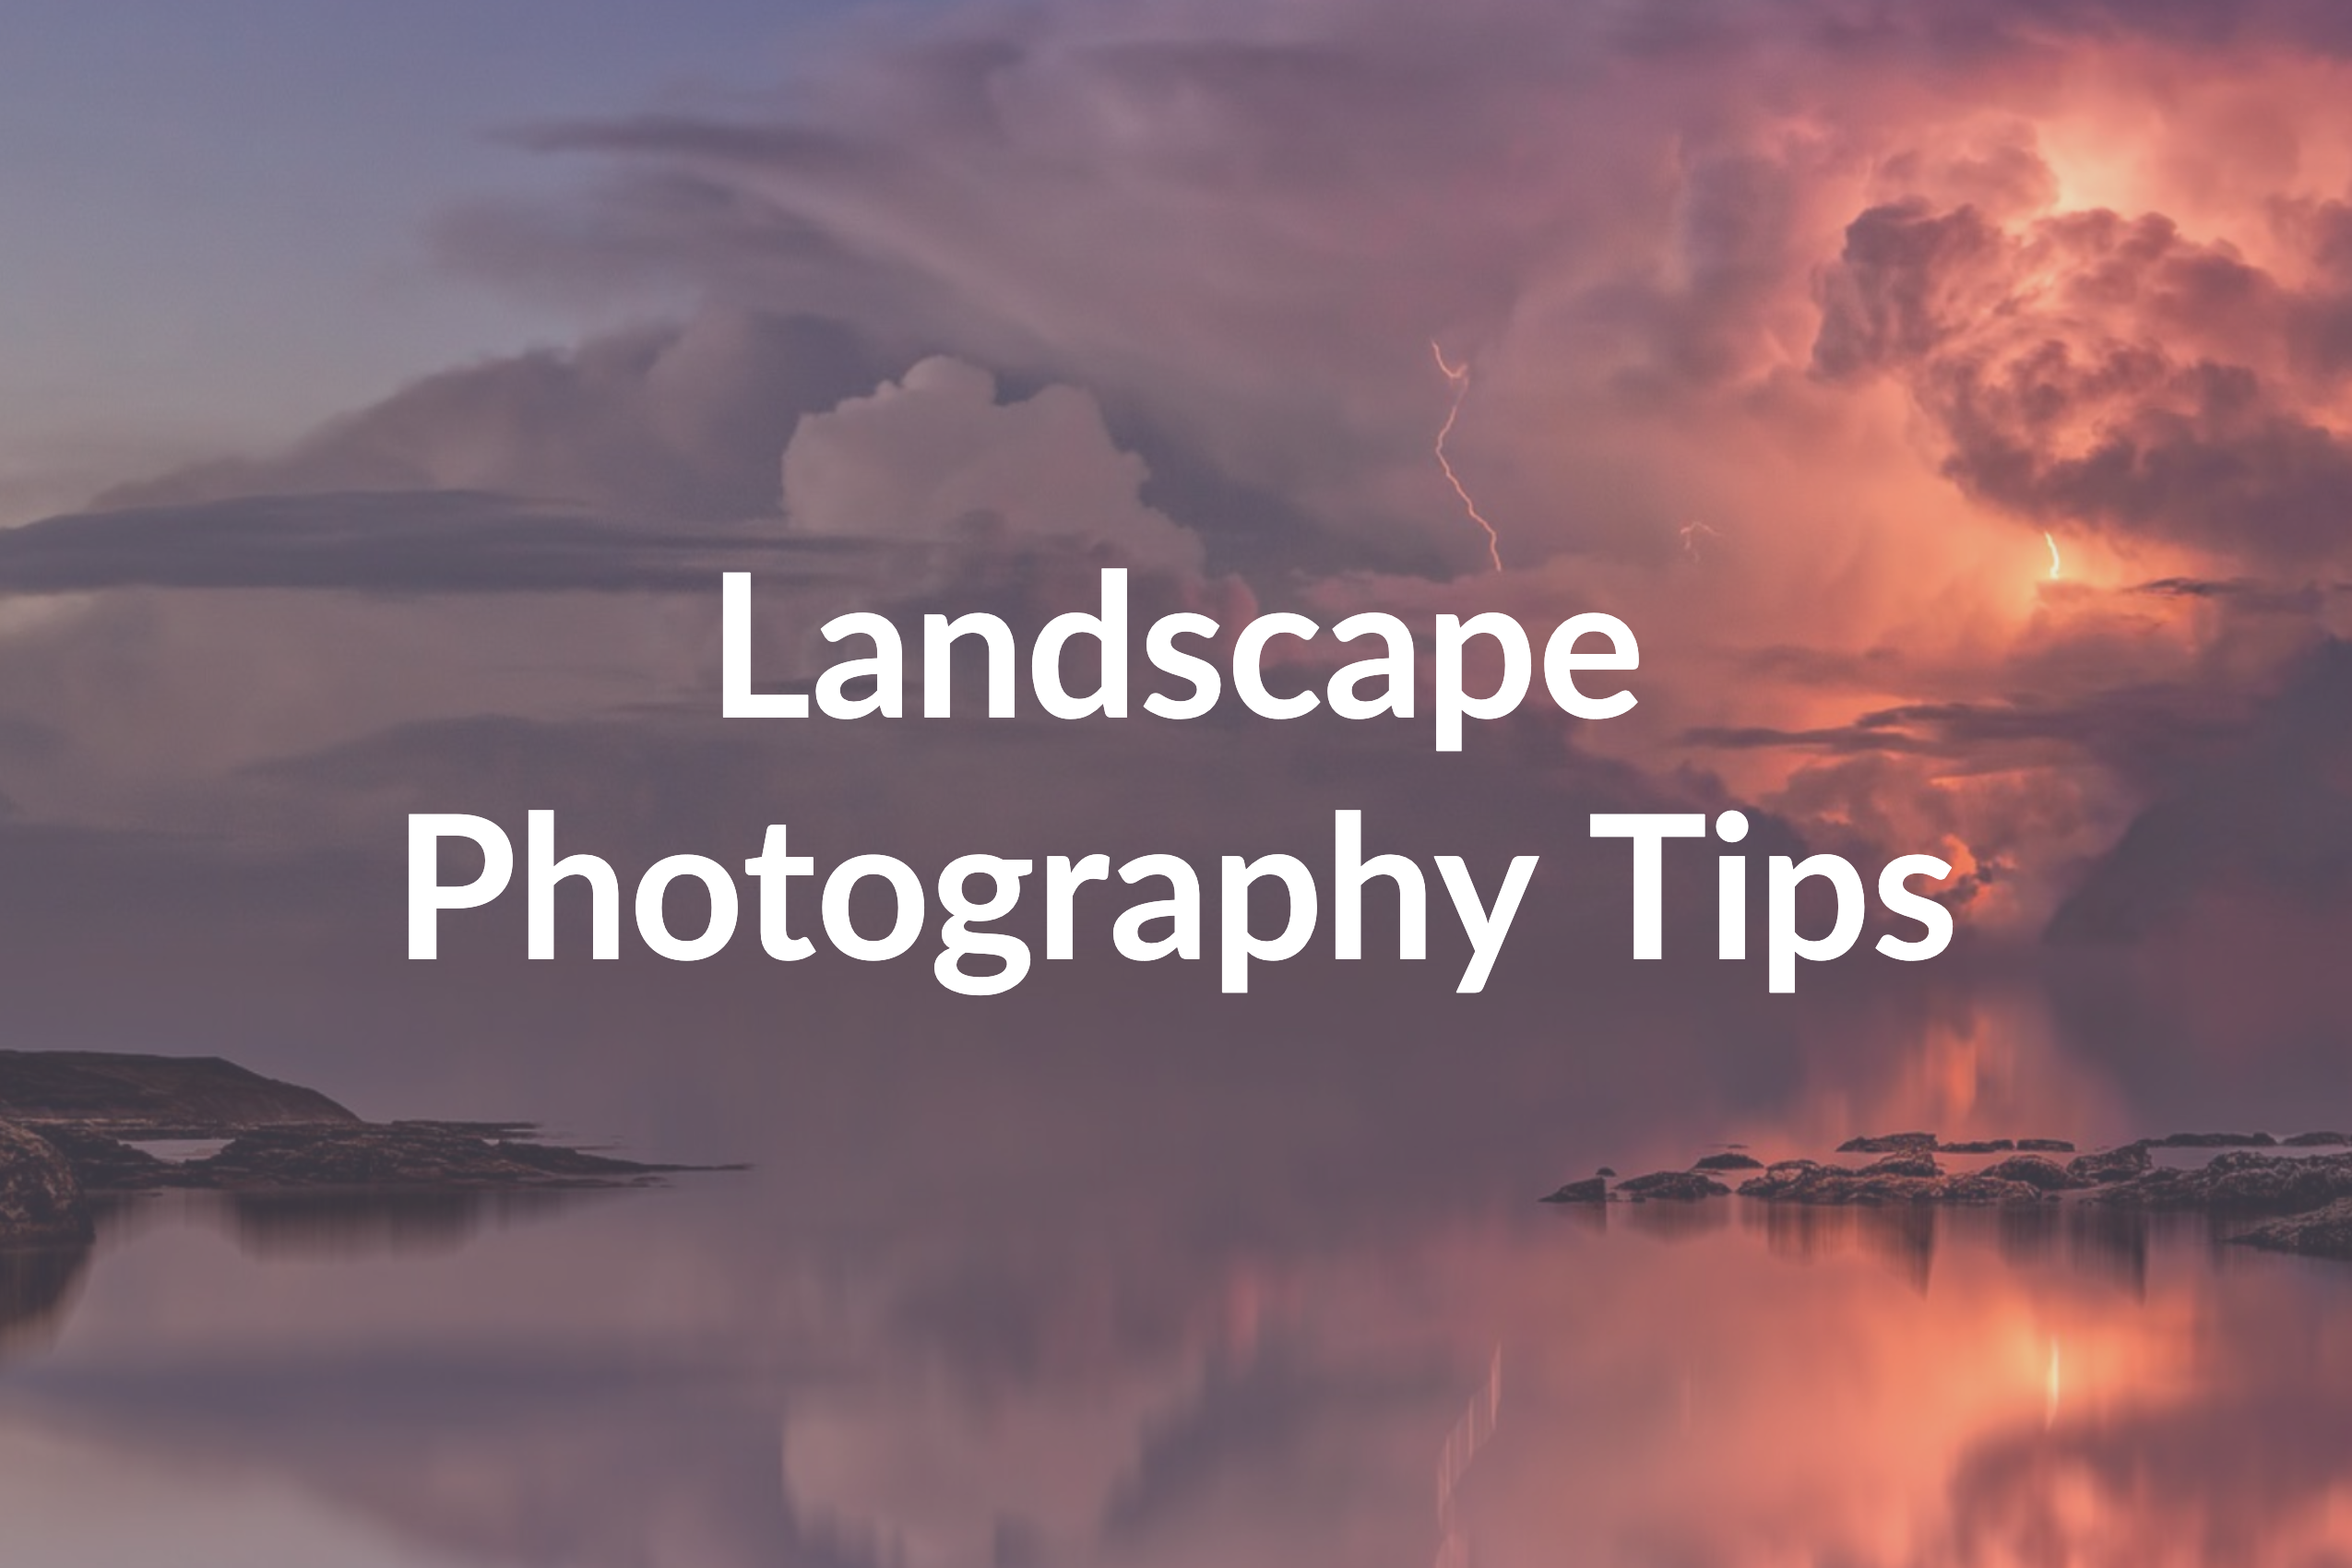 Landscape Photography Tips: 7 Surefire Techniques to Use Today